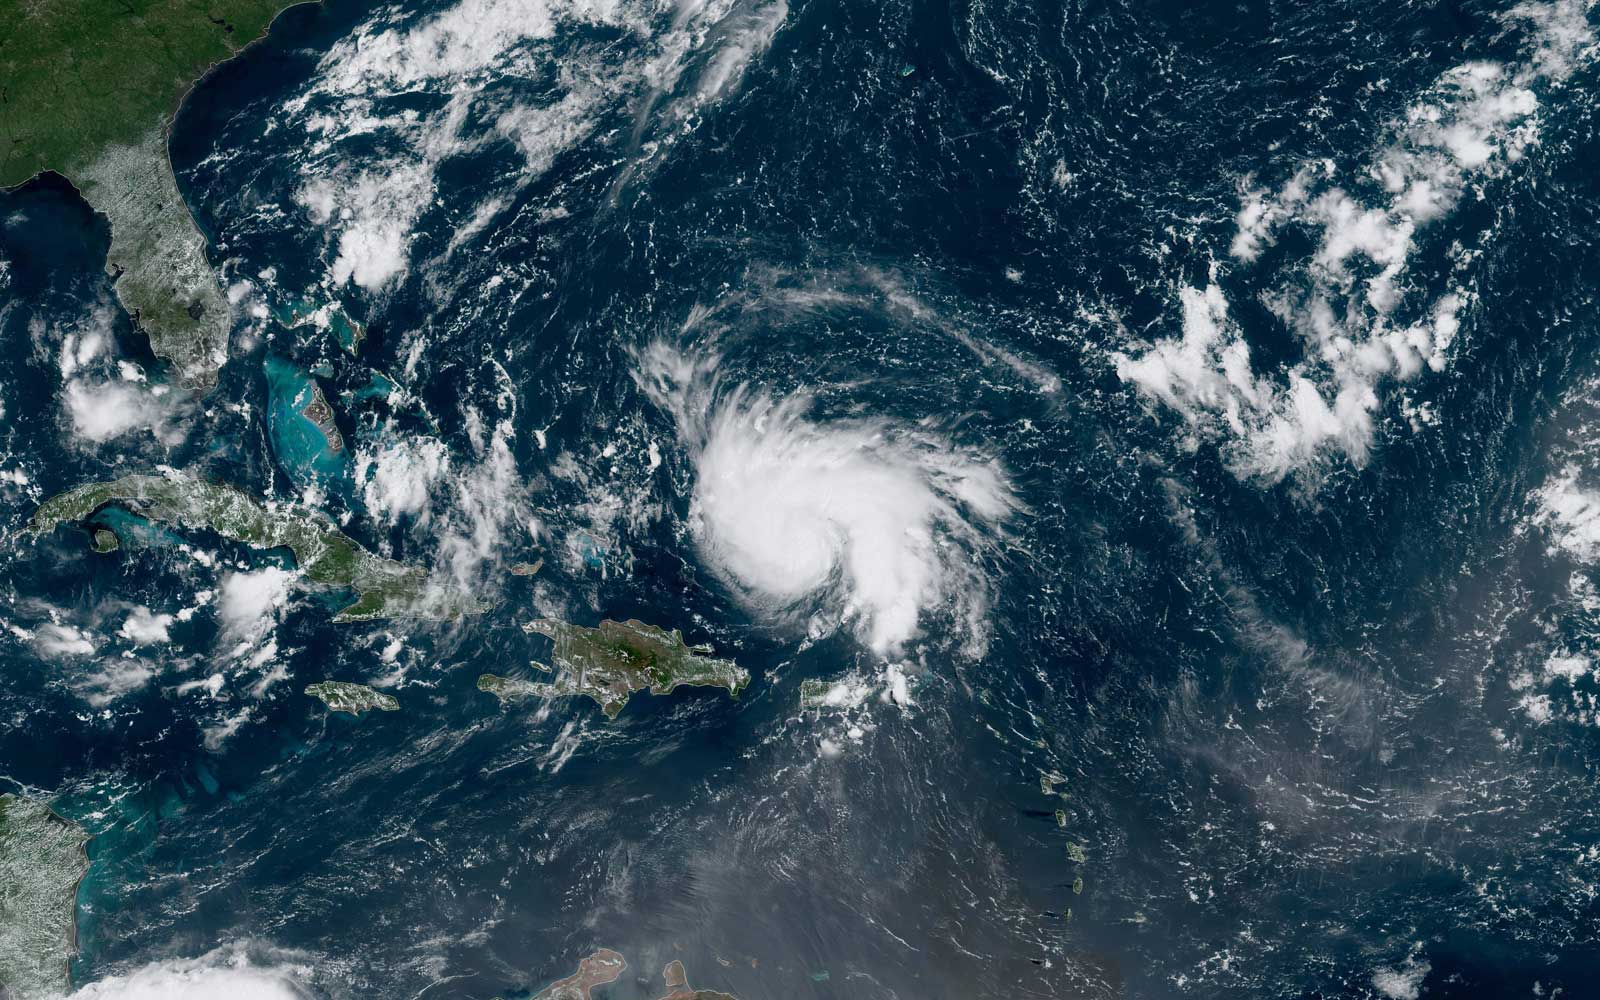 Hurricane Dorian Is Headed for Florida As It Strengthens Into a Category 3 Storm